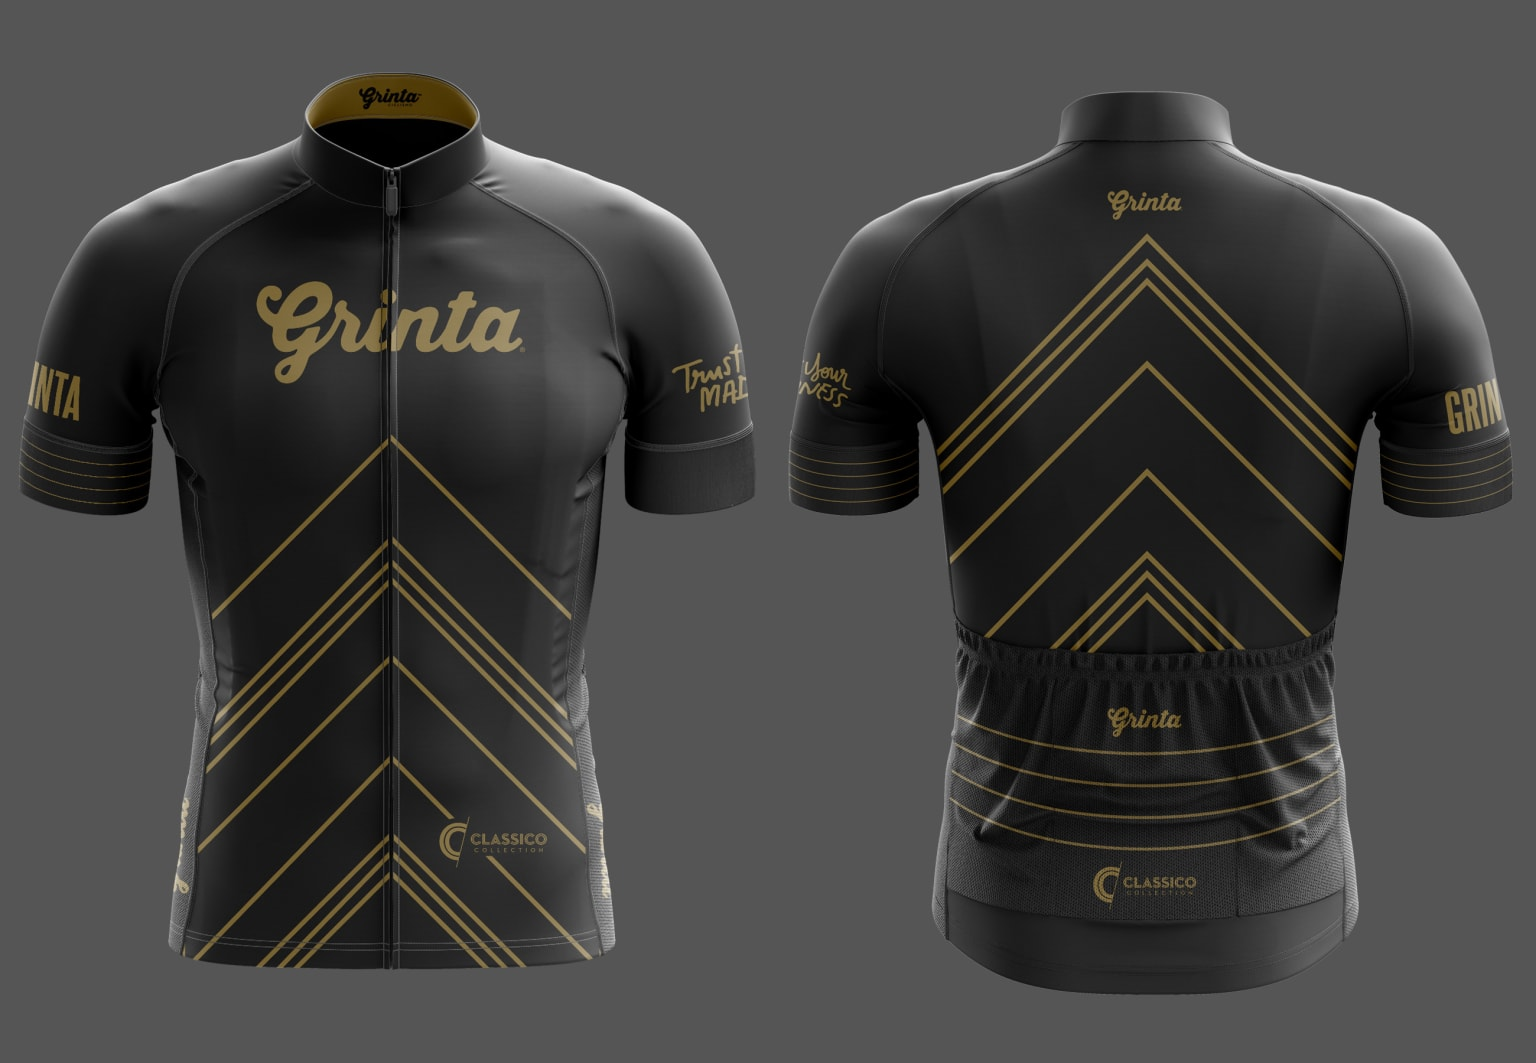 Grinta Cycling Jersey Designs